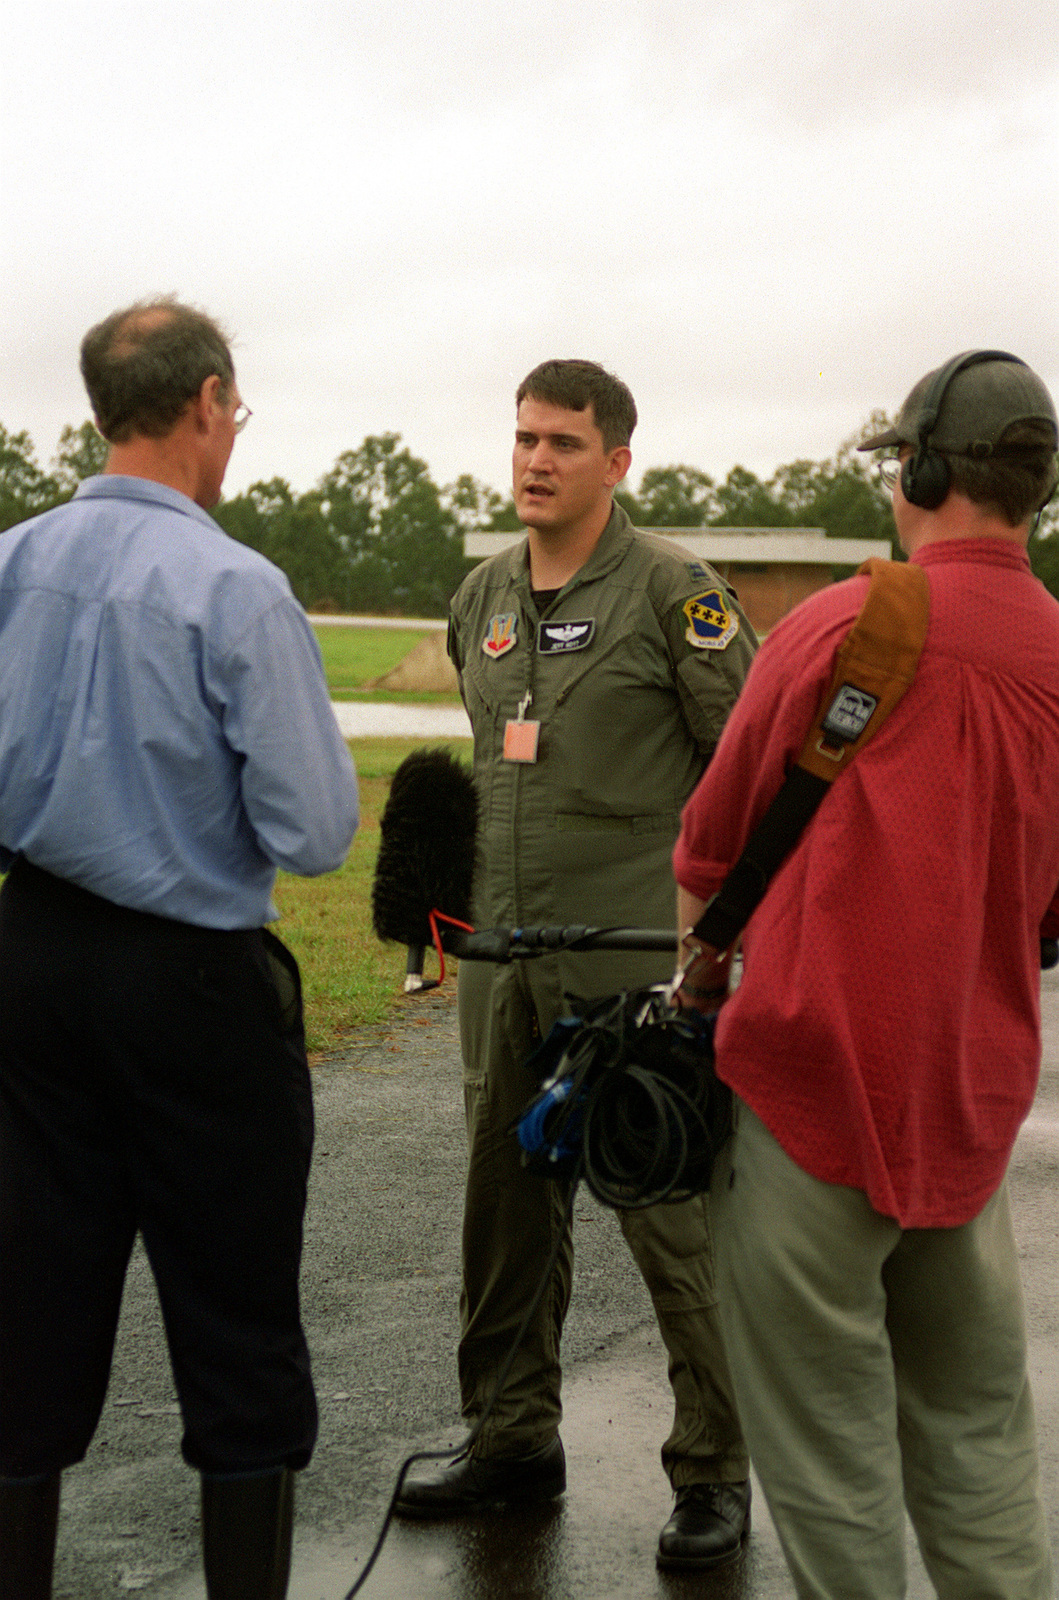 A member of the 9th Bomb Squadron discusses the operation and mission of the United States Air Force to the Australian press